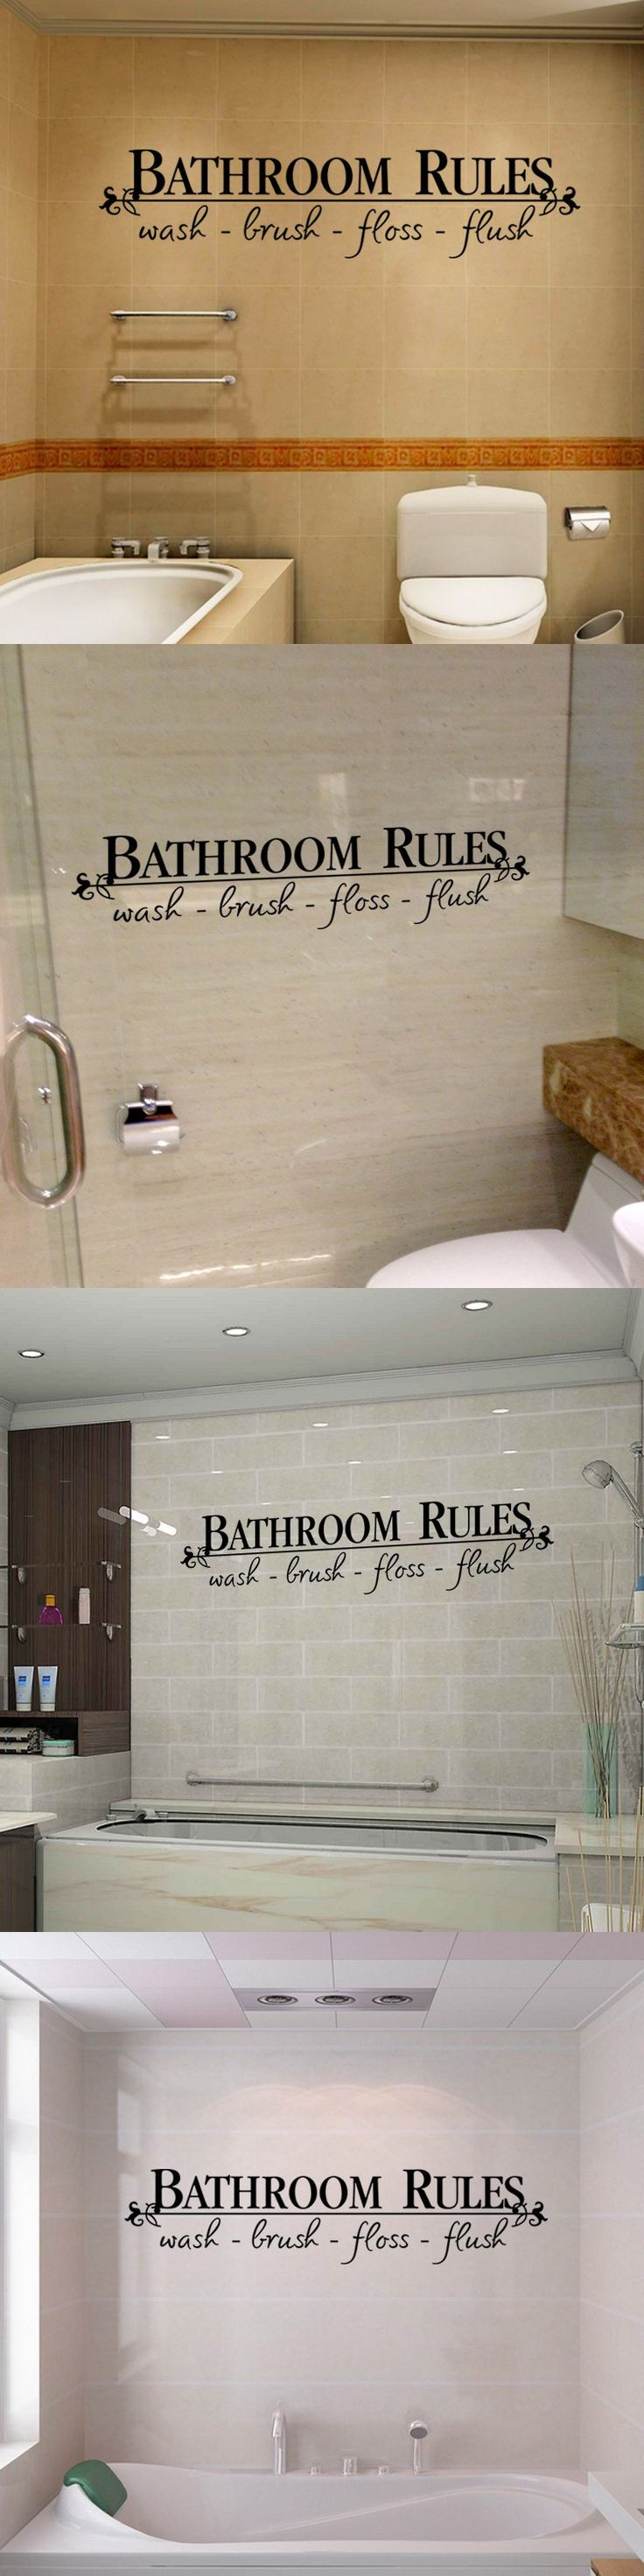 creative bathroom wall stickers waterproof removable vinyl wall art decal stickers home decorative bathroom english quote decals